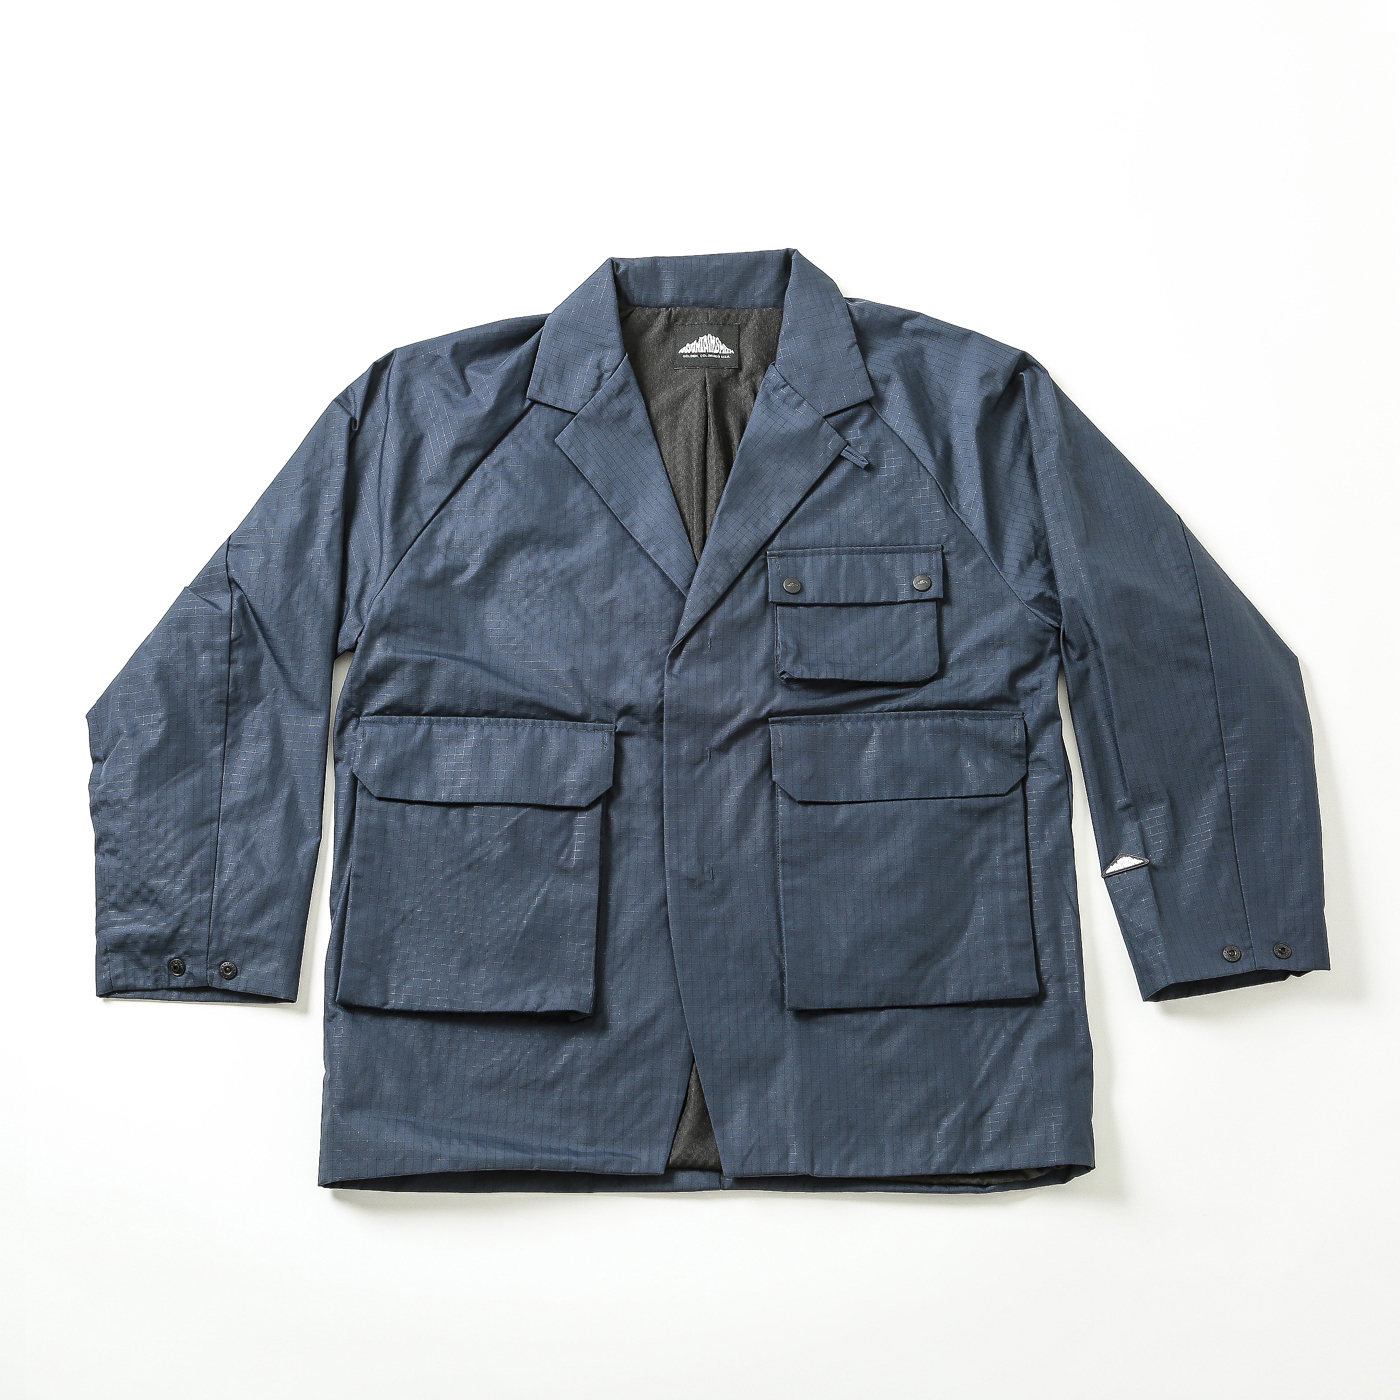 product: Moffat / color: NAVY 1